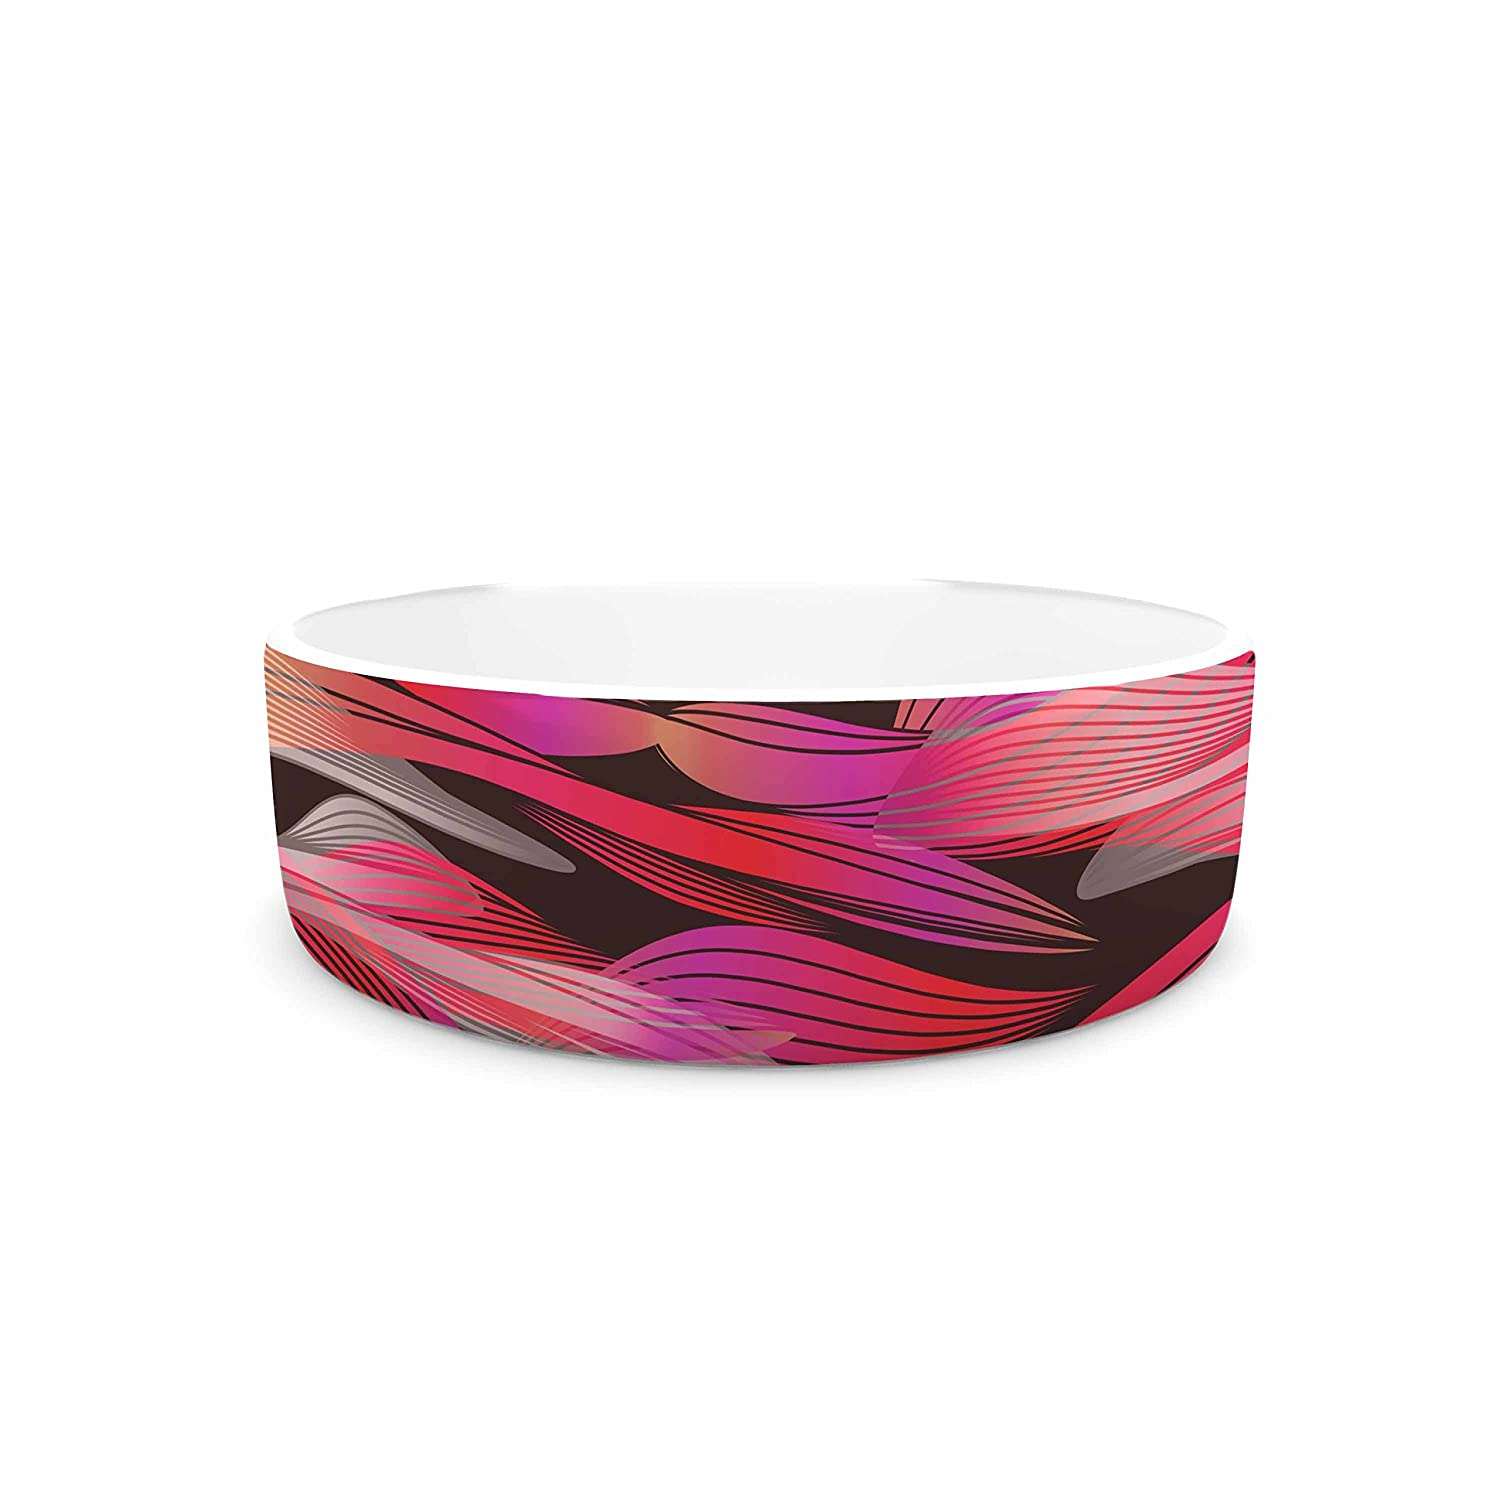 7\ KESS InHouse Angelo Cerantola Tropical Electric Pink  Black Illustration Pet Bowl, 7